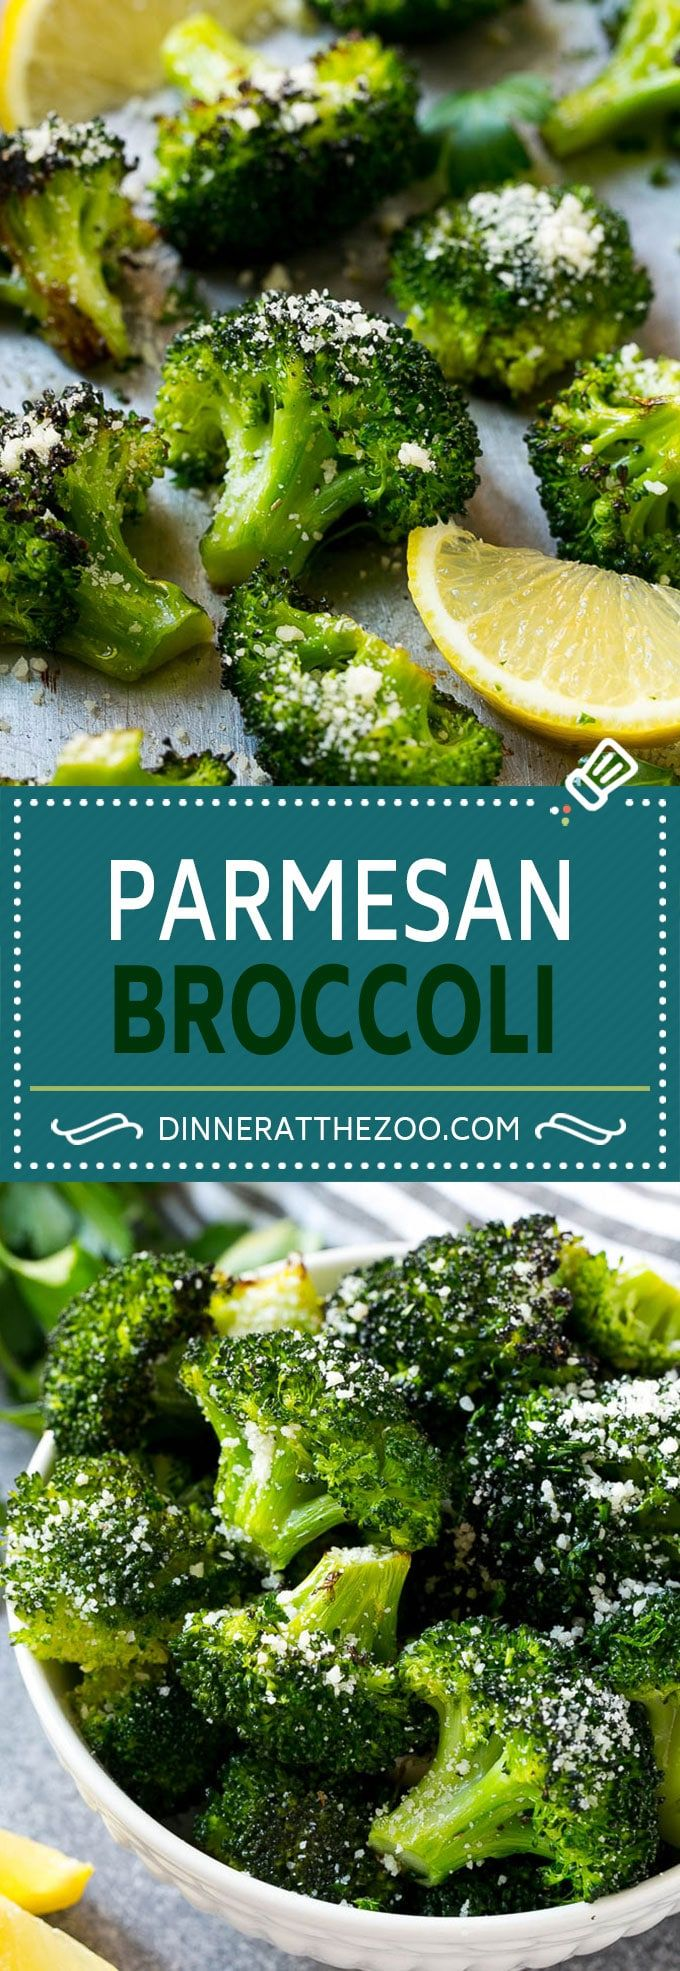 Parmesan Roasted Broccoli Recipe | Posted By: DebbieNet.com